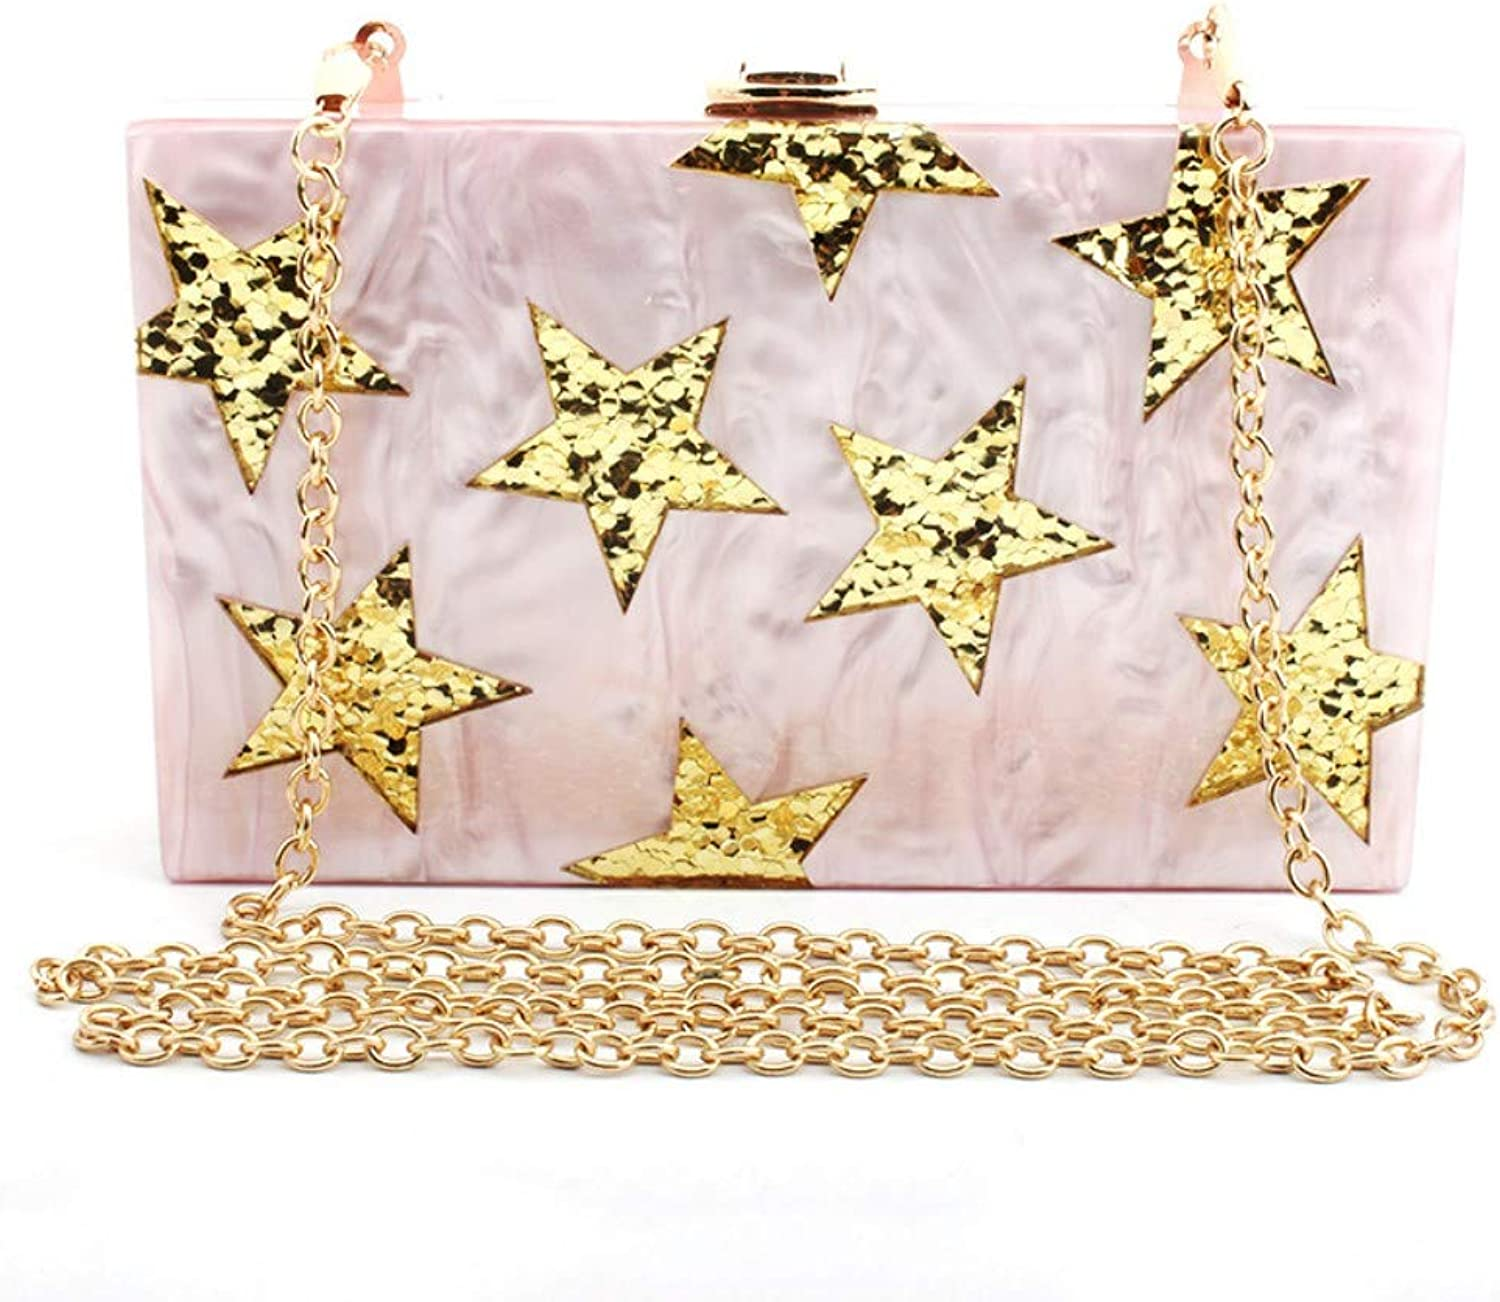 Wershiny Clutch Purses for Women Evening Bags Shoulder Party Cross Body Handbags Pentagram Star Acrylic Sequins Women's Hand Dress